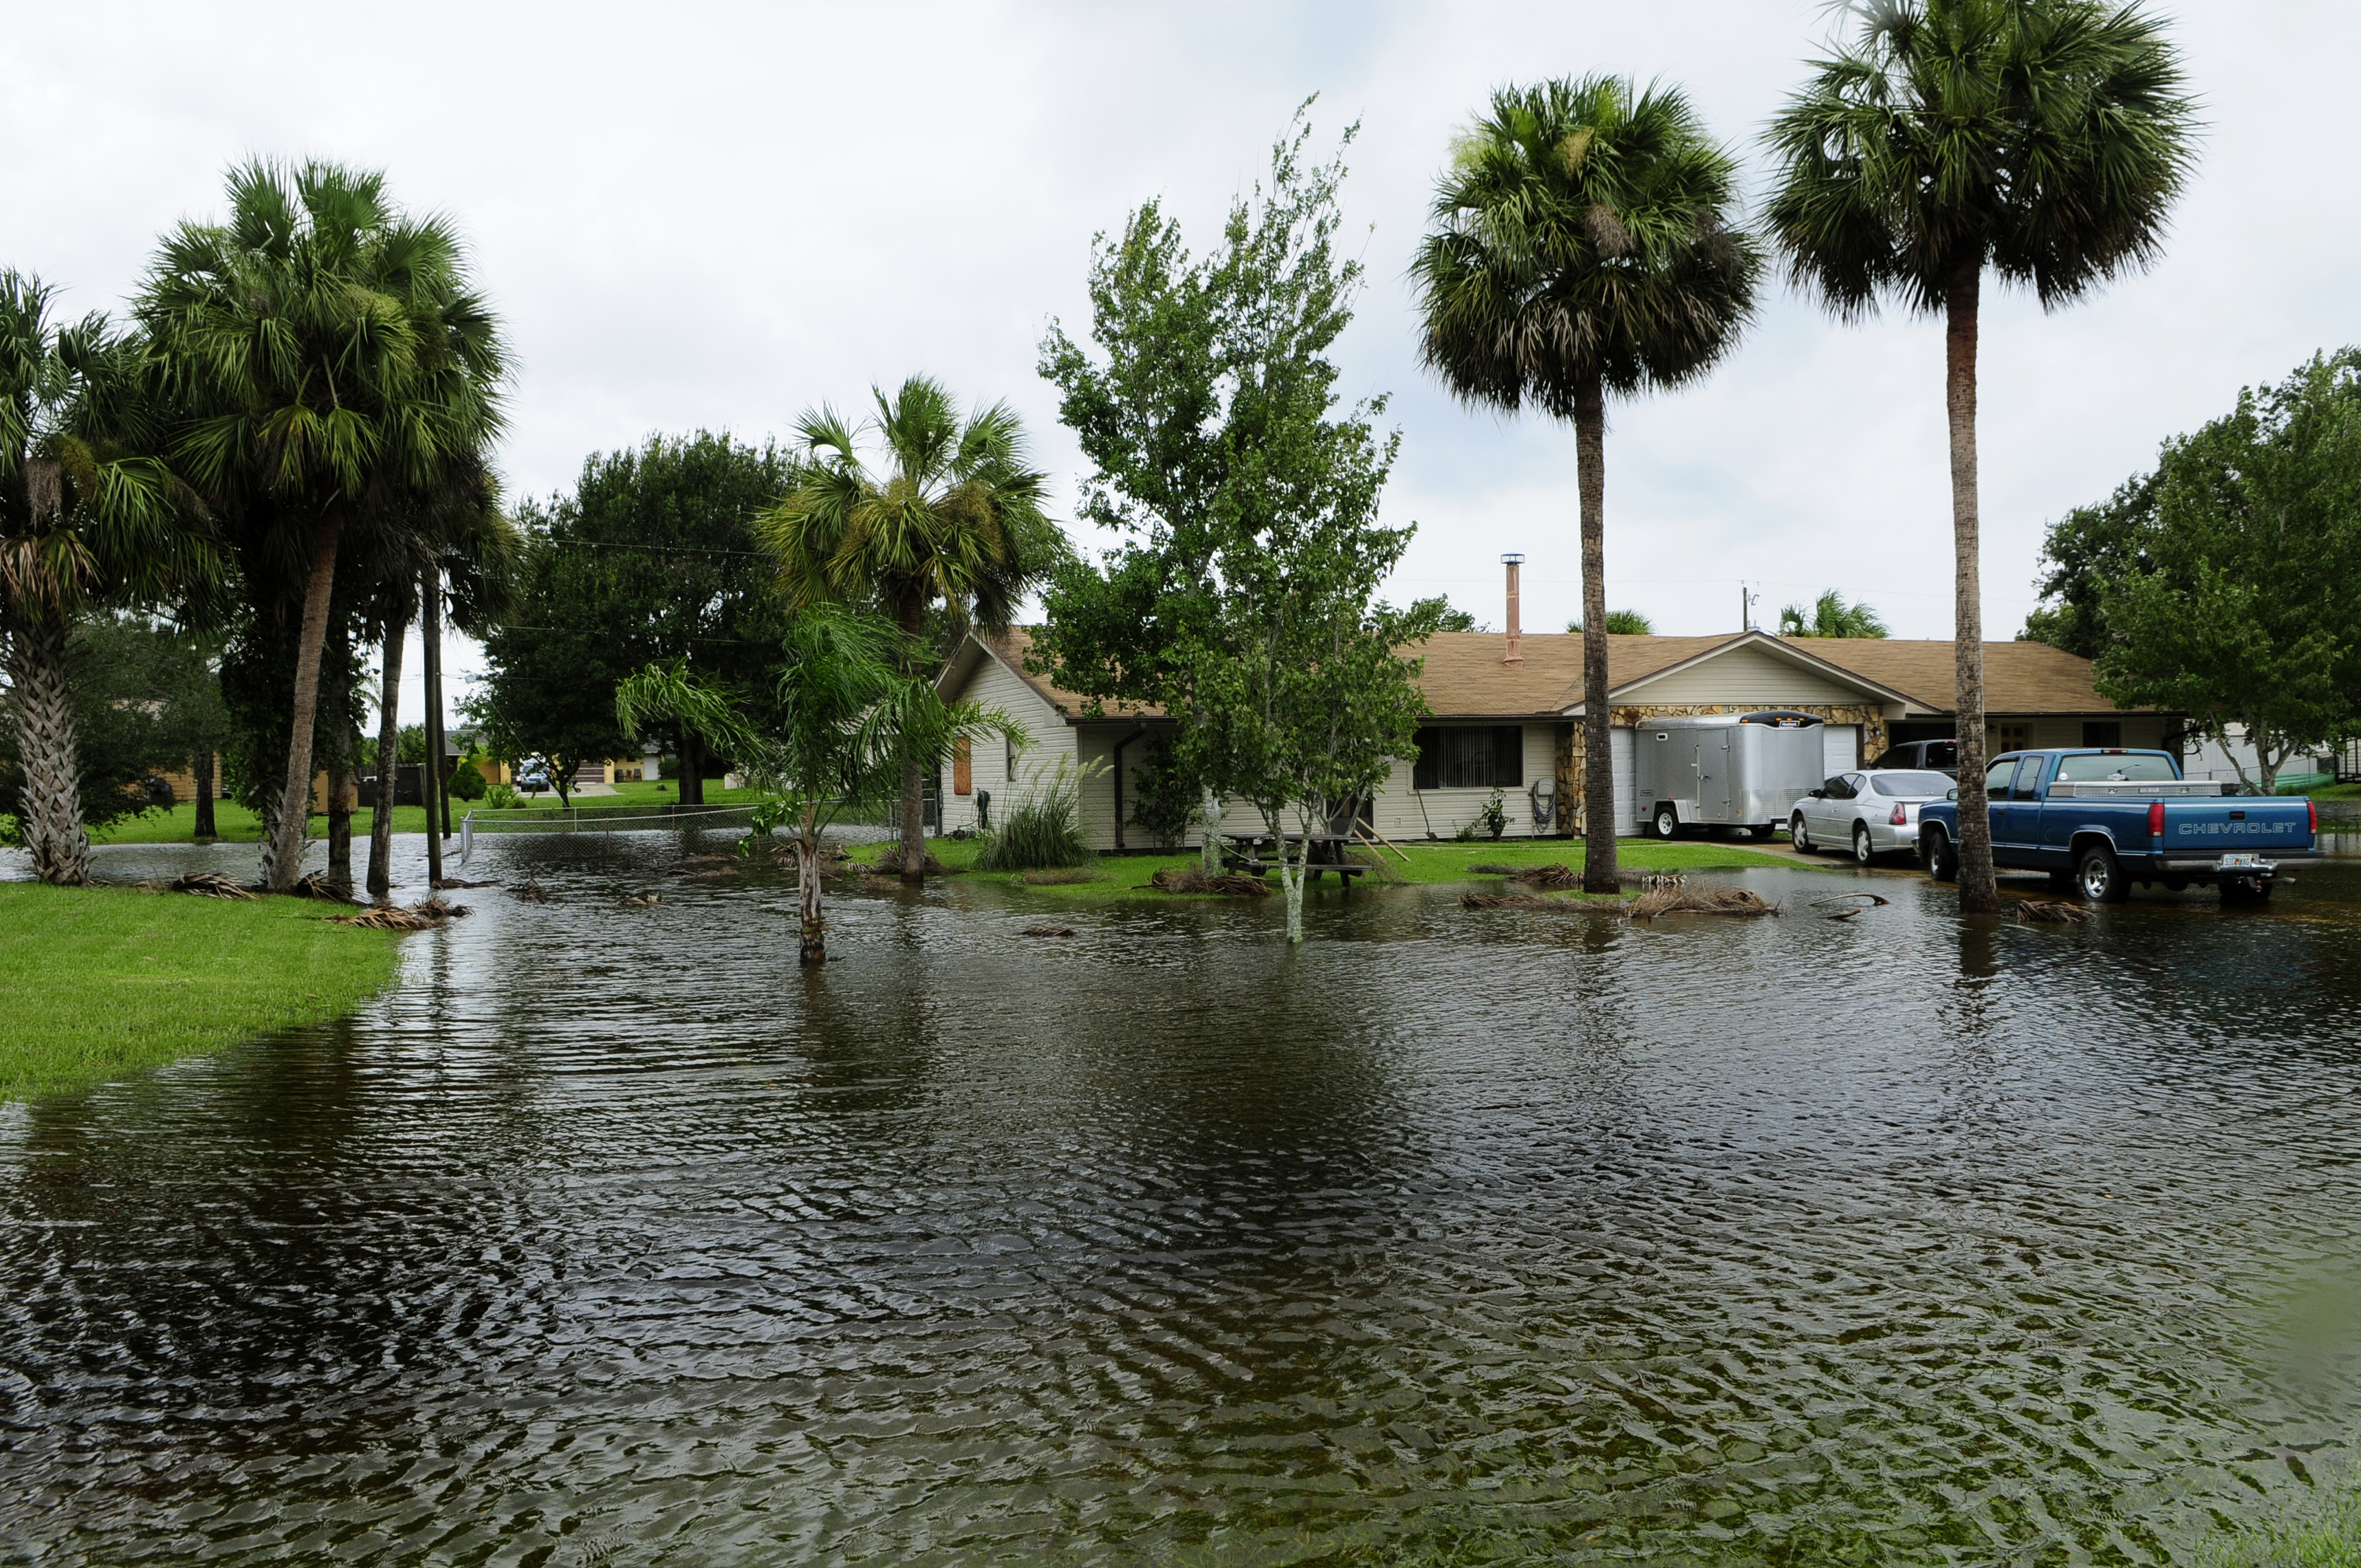 FEMA_-_37593_-_Home_surrounded_by_flood_waters_in_Florida.jpg